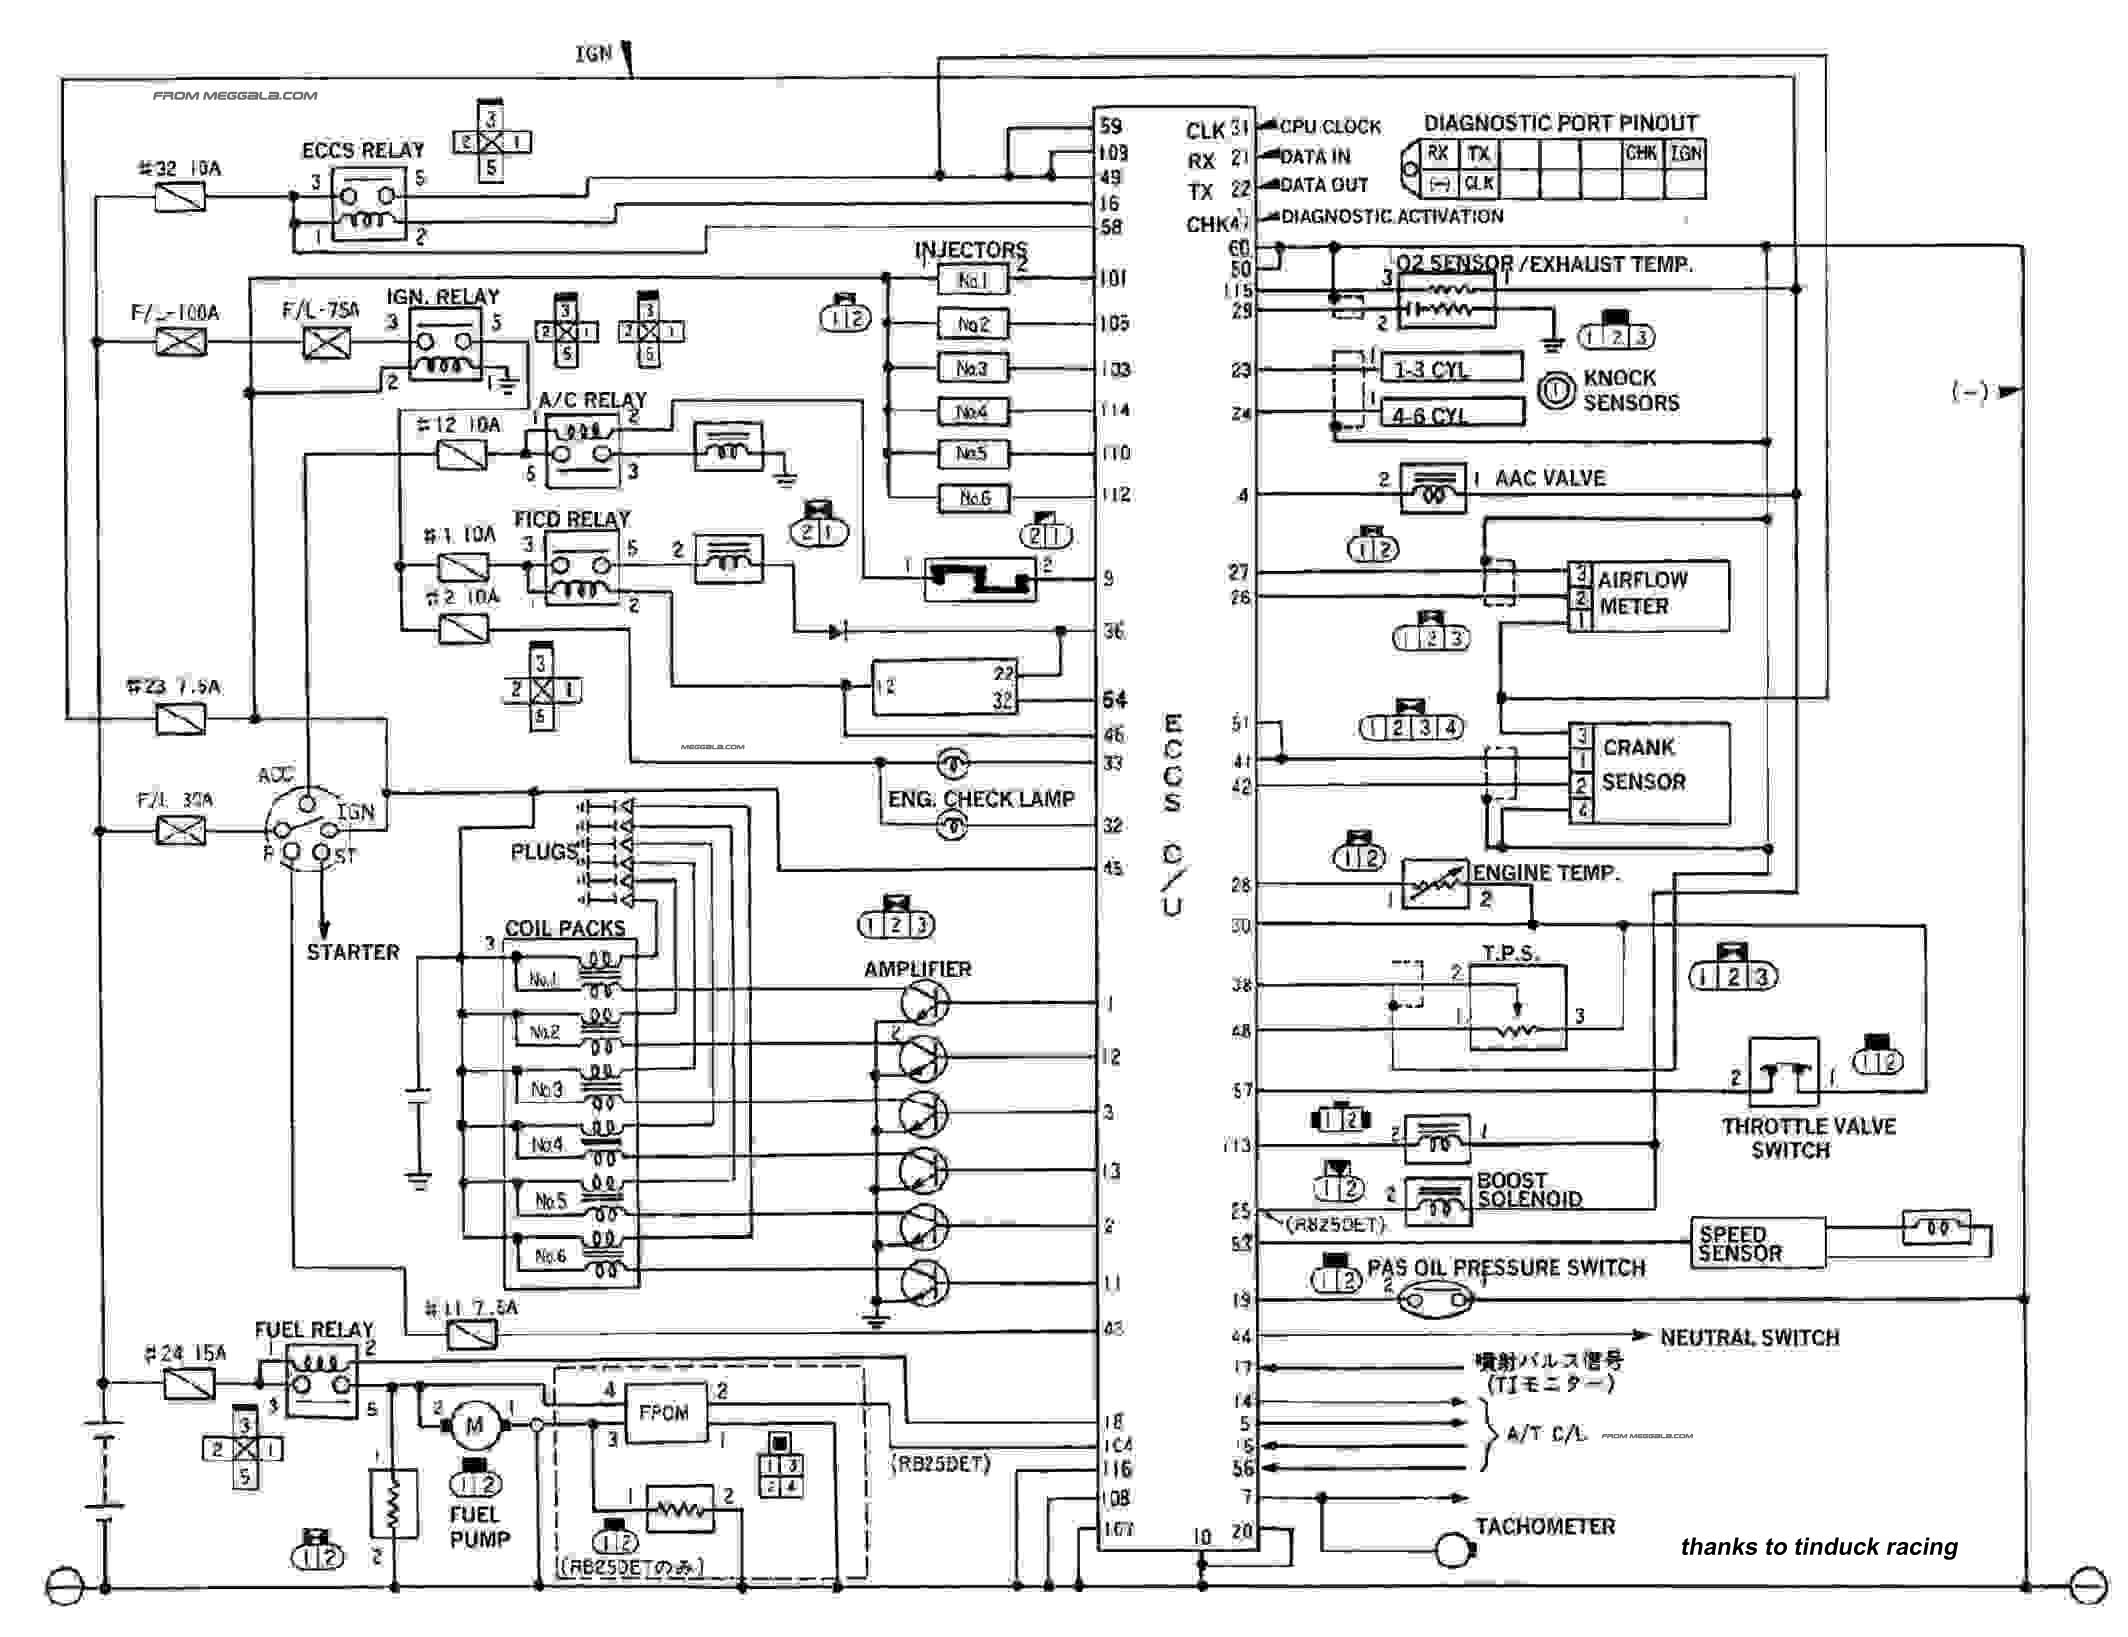 mitsubishi galant vr 4 circuit diagram and wiring harness